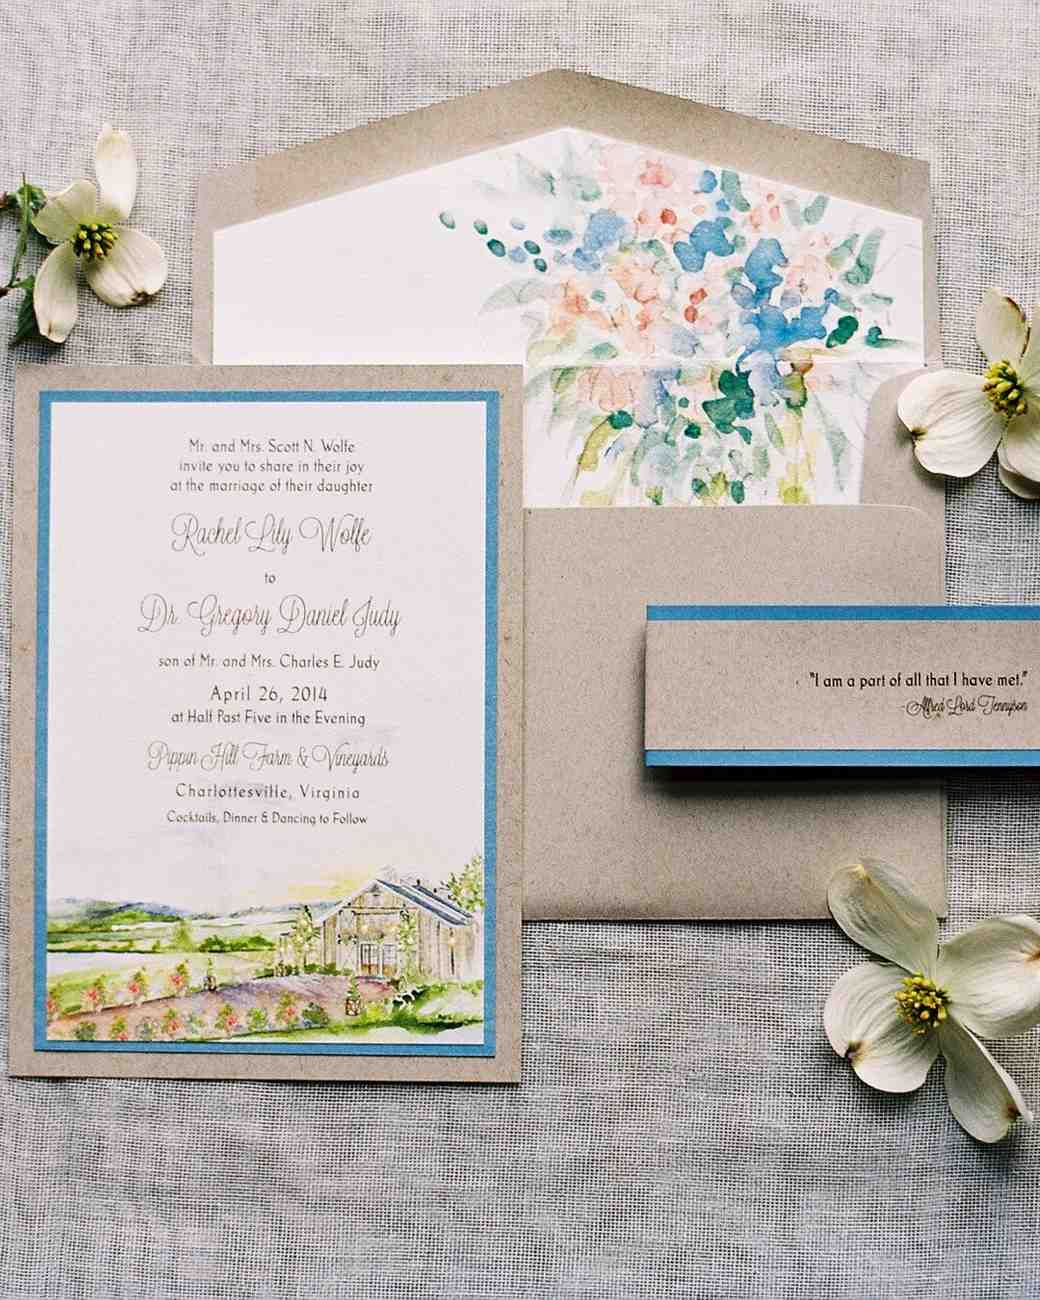 Peaceably And Green Watercolor Wedding Invitation Loveliest Watercolor Wedding Invitations Martha Stewart Weddings Watercolor Wedding Invitation Suite Watercolor Wedding Invitations Philippines wedding invitation Watercolor Wedding Invitations